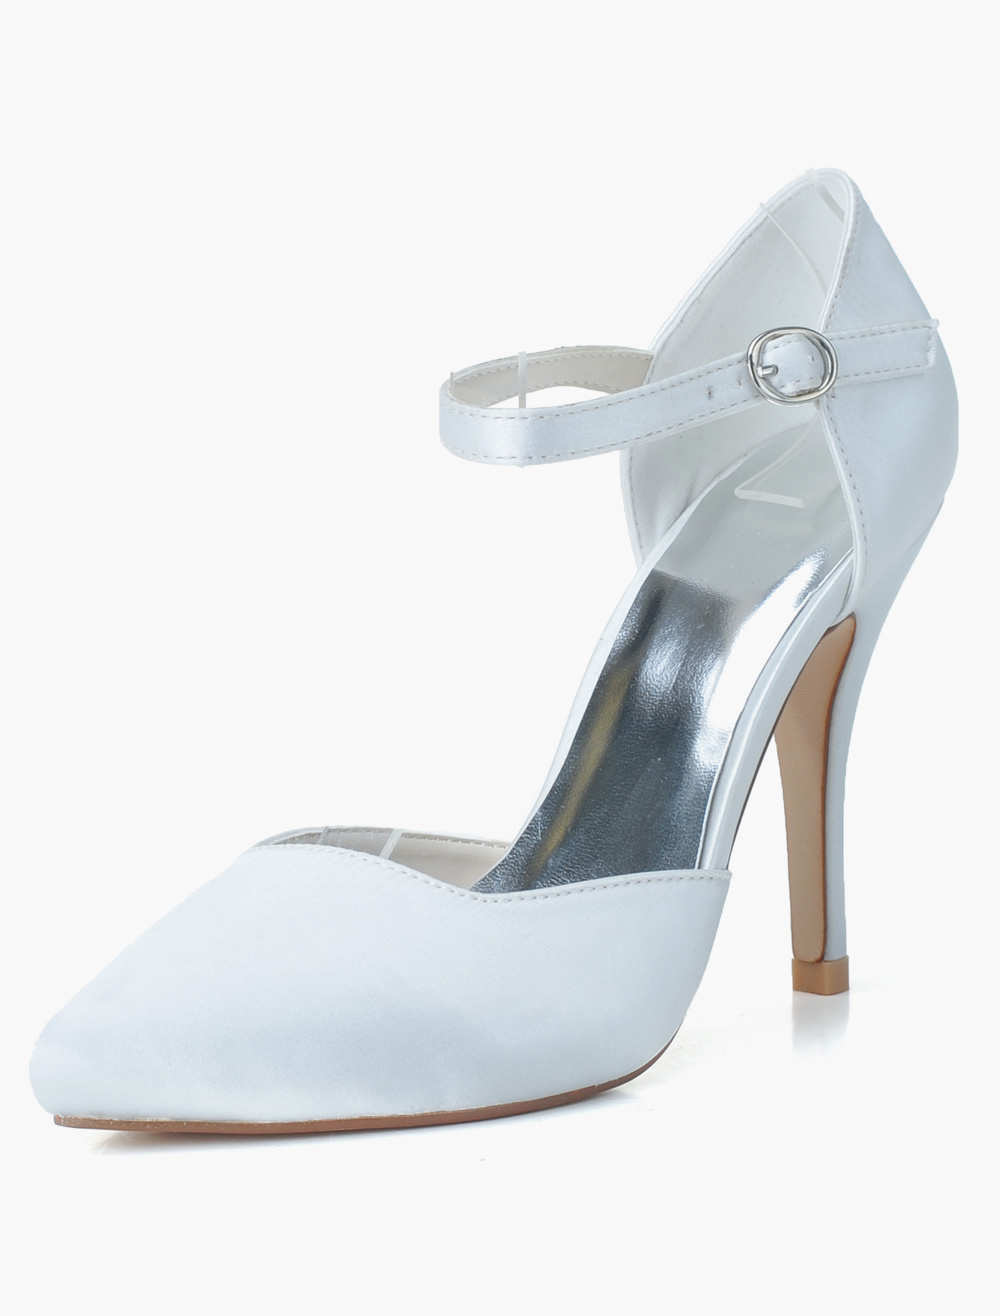 Satin Pointed Toe Ankle Strap Evening and Bridal Platforms